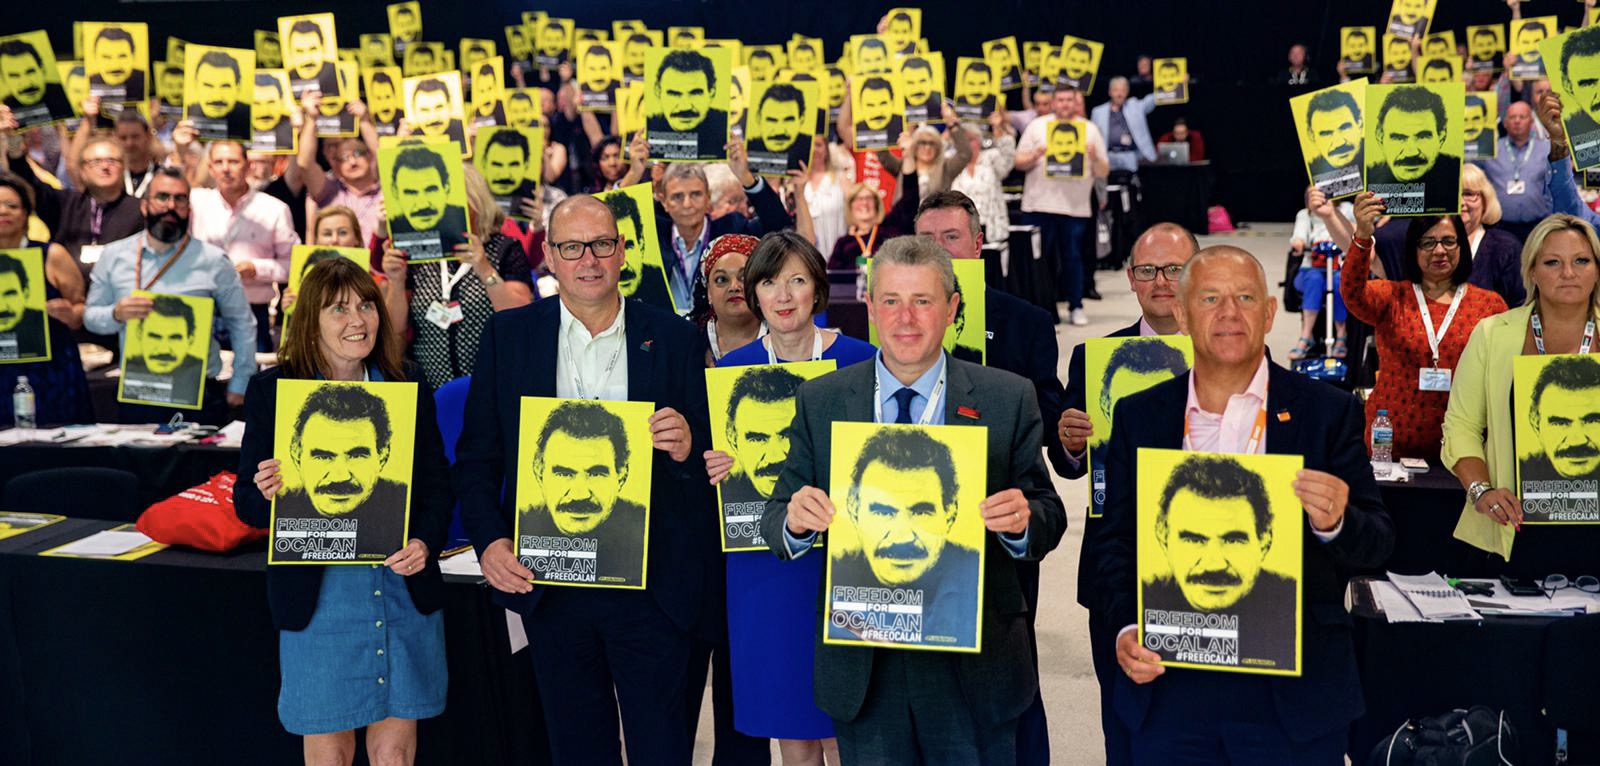 Steve Turner, assistant general secretary Unite the Union, Frances O'Grady general secretary TUC, Mark Serwotka general secretary PCS and president TUC, Tim Roache general secretary GMB holding placards calling for Abdullah Ocalans release Freedom for Ocalan at TUC congress 2019